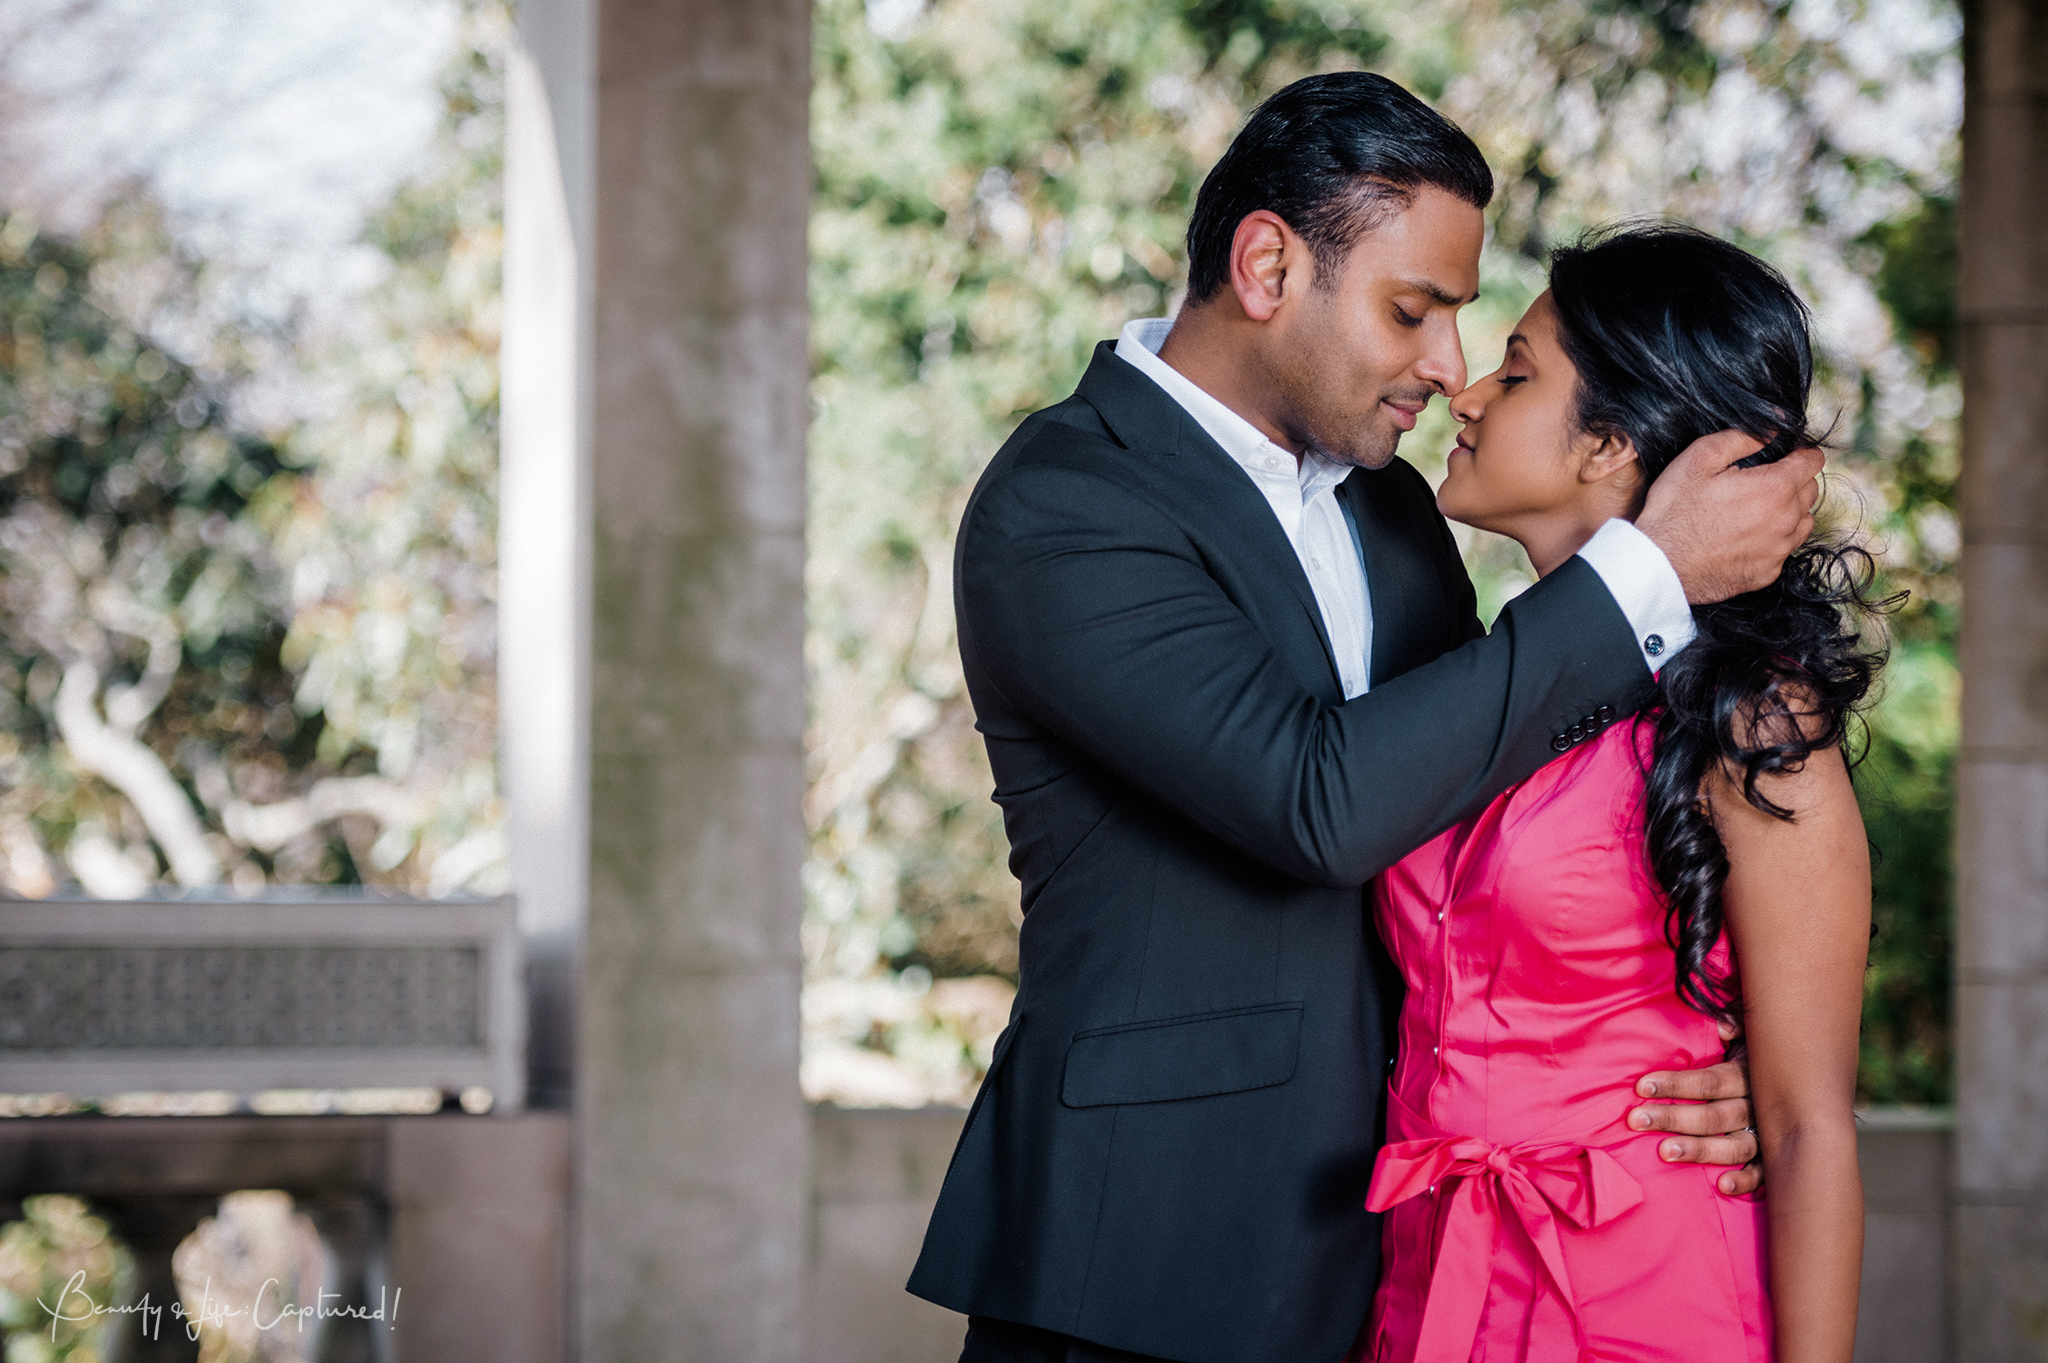 Beauty_and_Life_Captured_Shilpa_Engagement-13.jpg